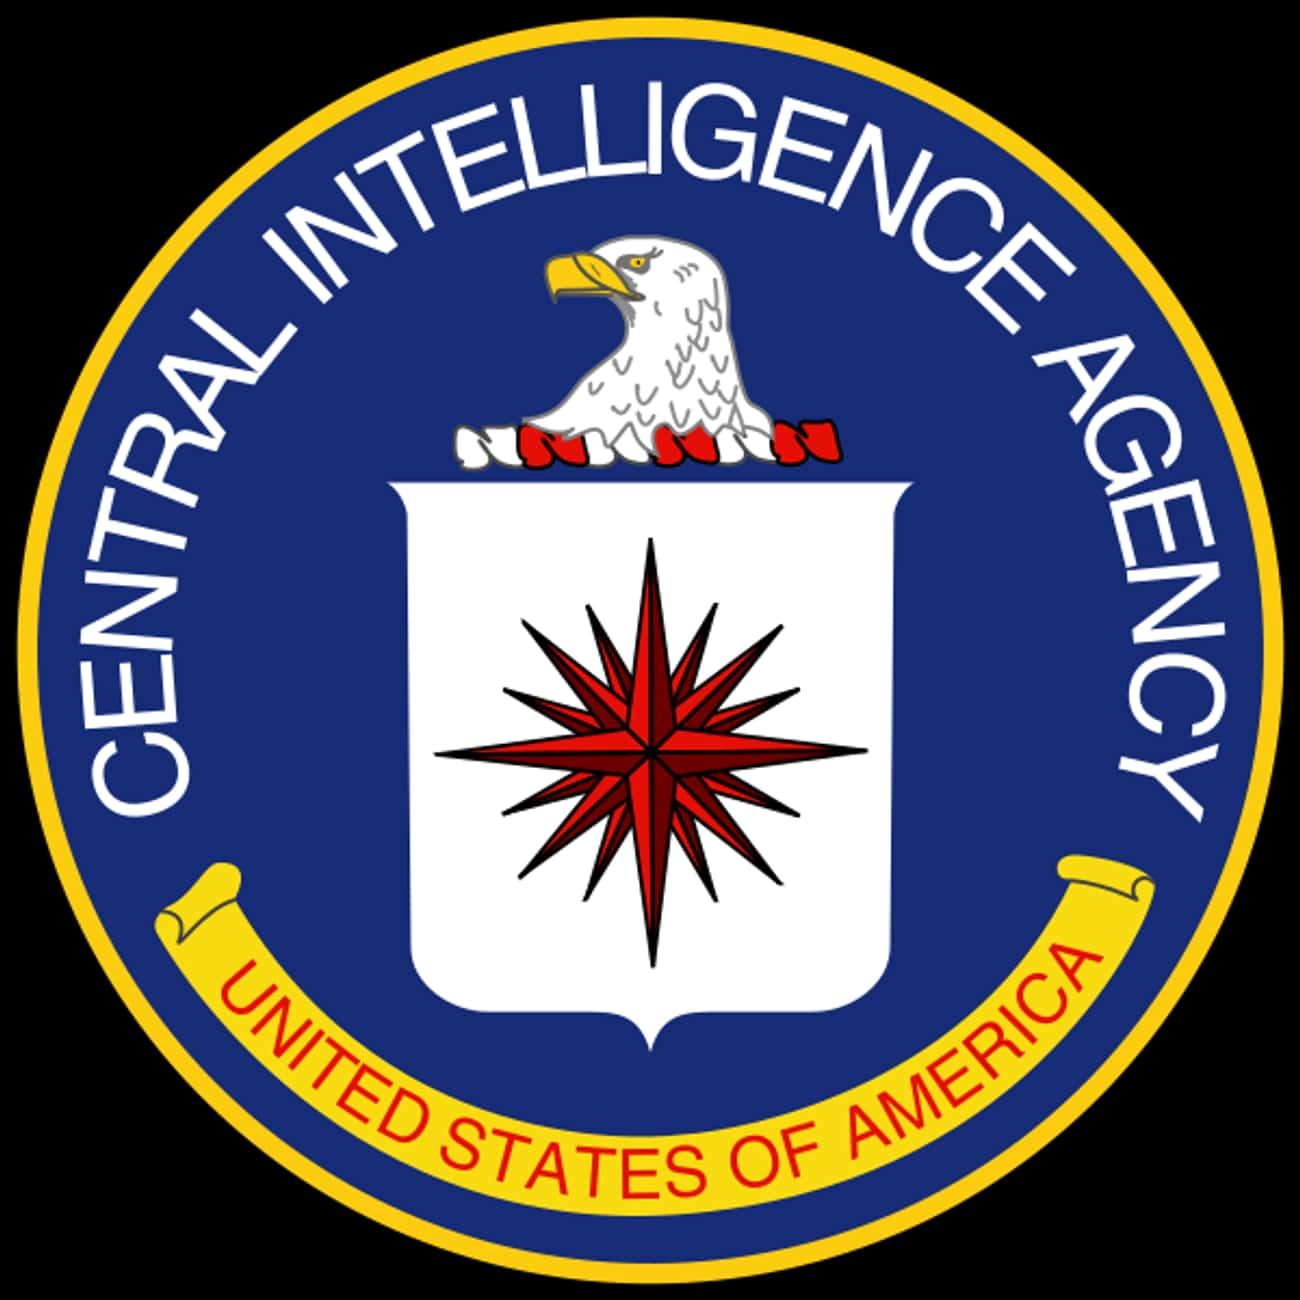 CIA Mind Control is listed (or ranked) 1 on the list The Biggest, Most Notorious Government Cover Ups Ever